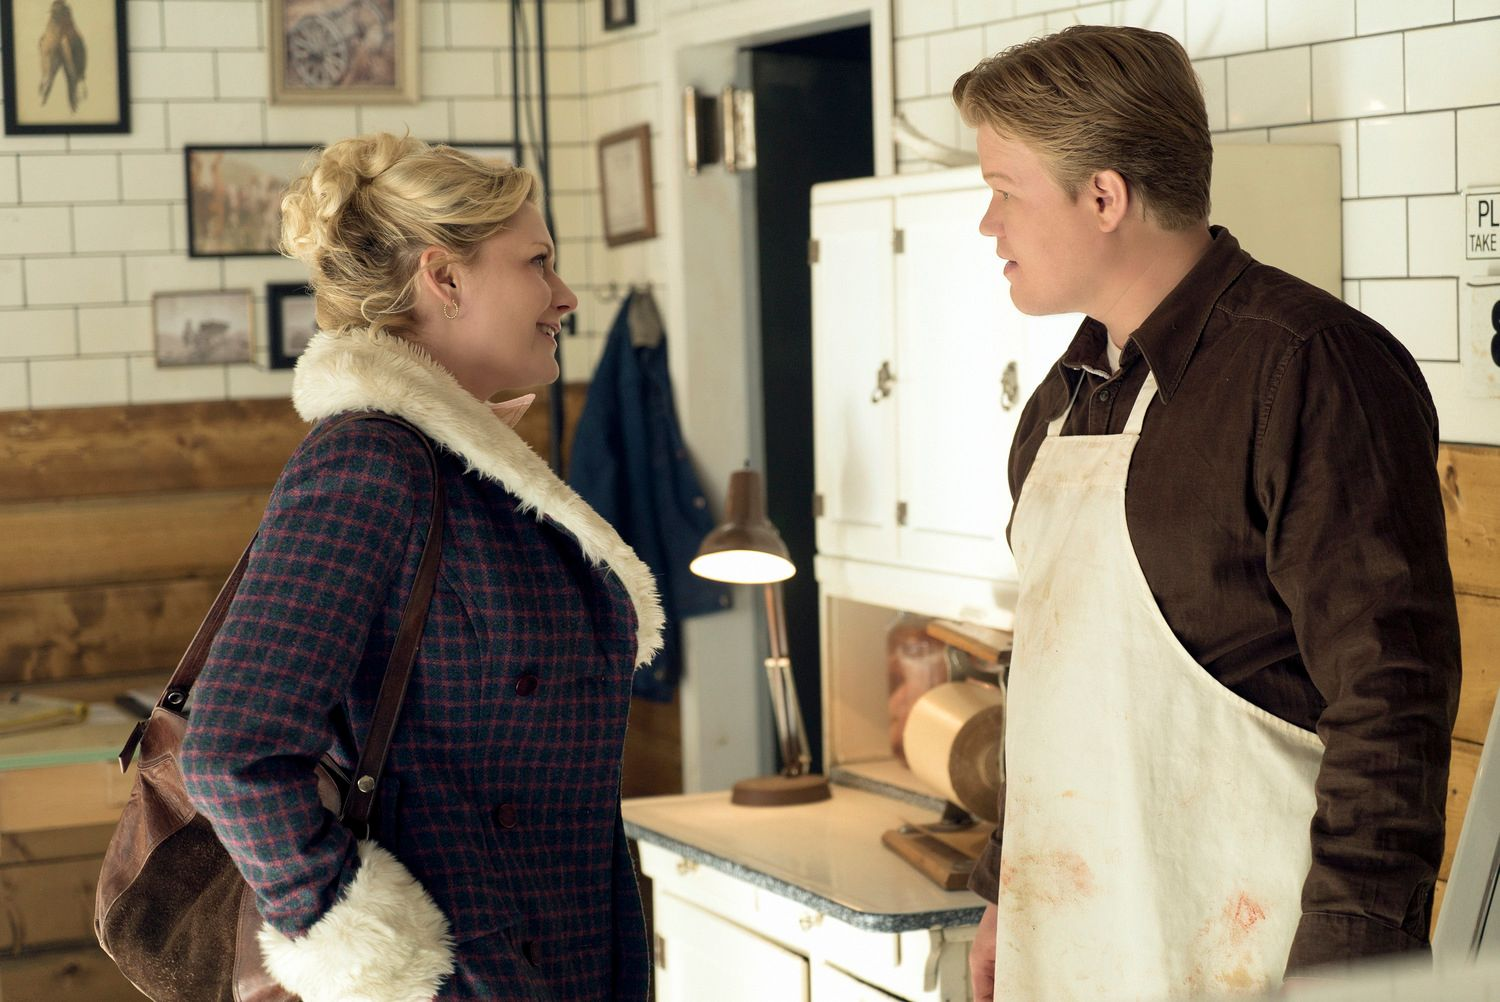 fargo recap the myth of sisyphus season 2 episode 3  fargo season 2 sisyphus kirsten dunst jesse plemmons